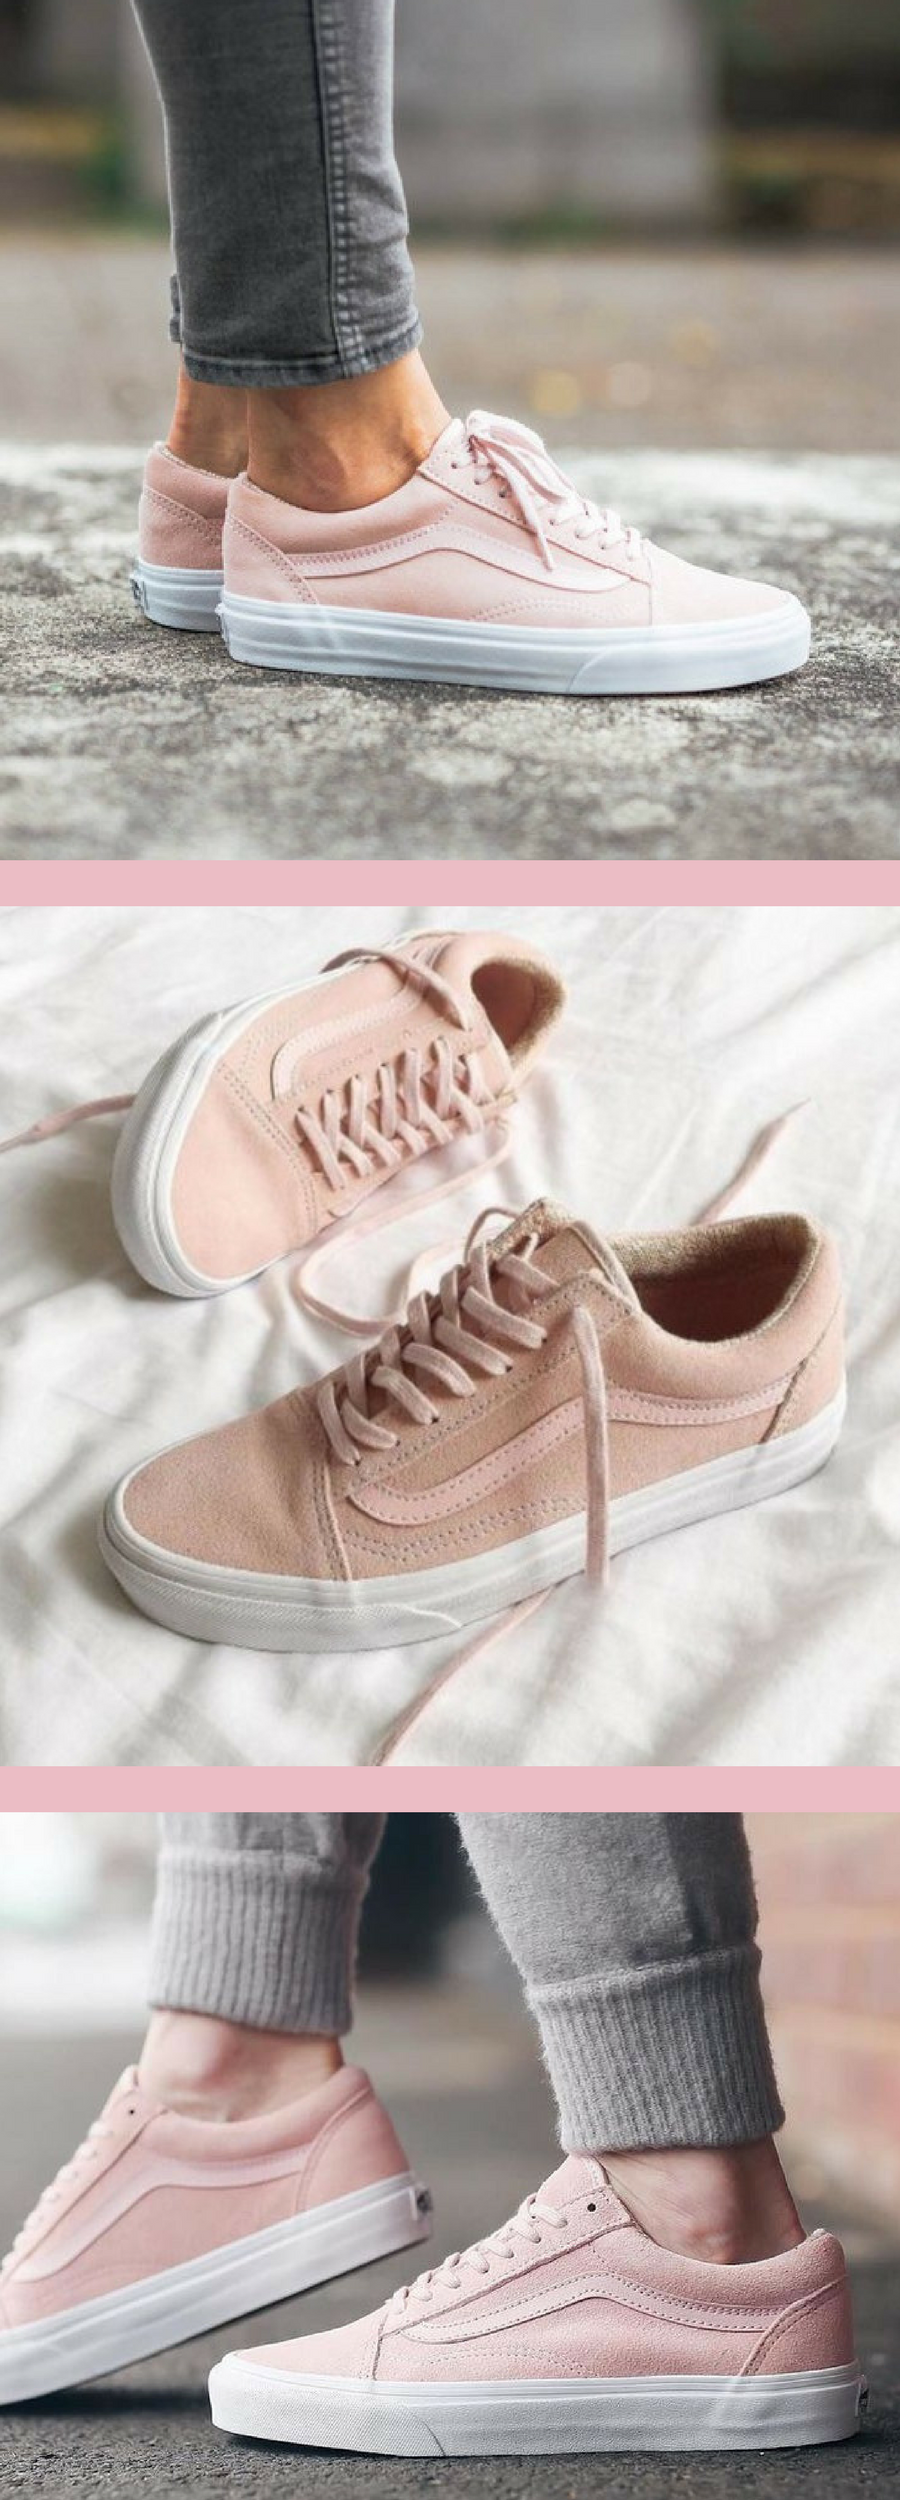 76e822609cb I just love these light pink vans! So cute for casual wear when out and  about. Super comfy too! #pink #vans #shoelove #ad